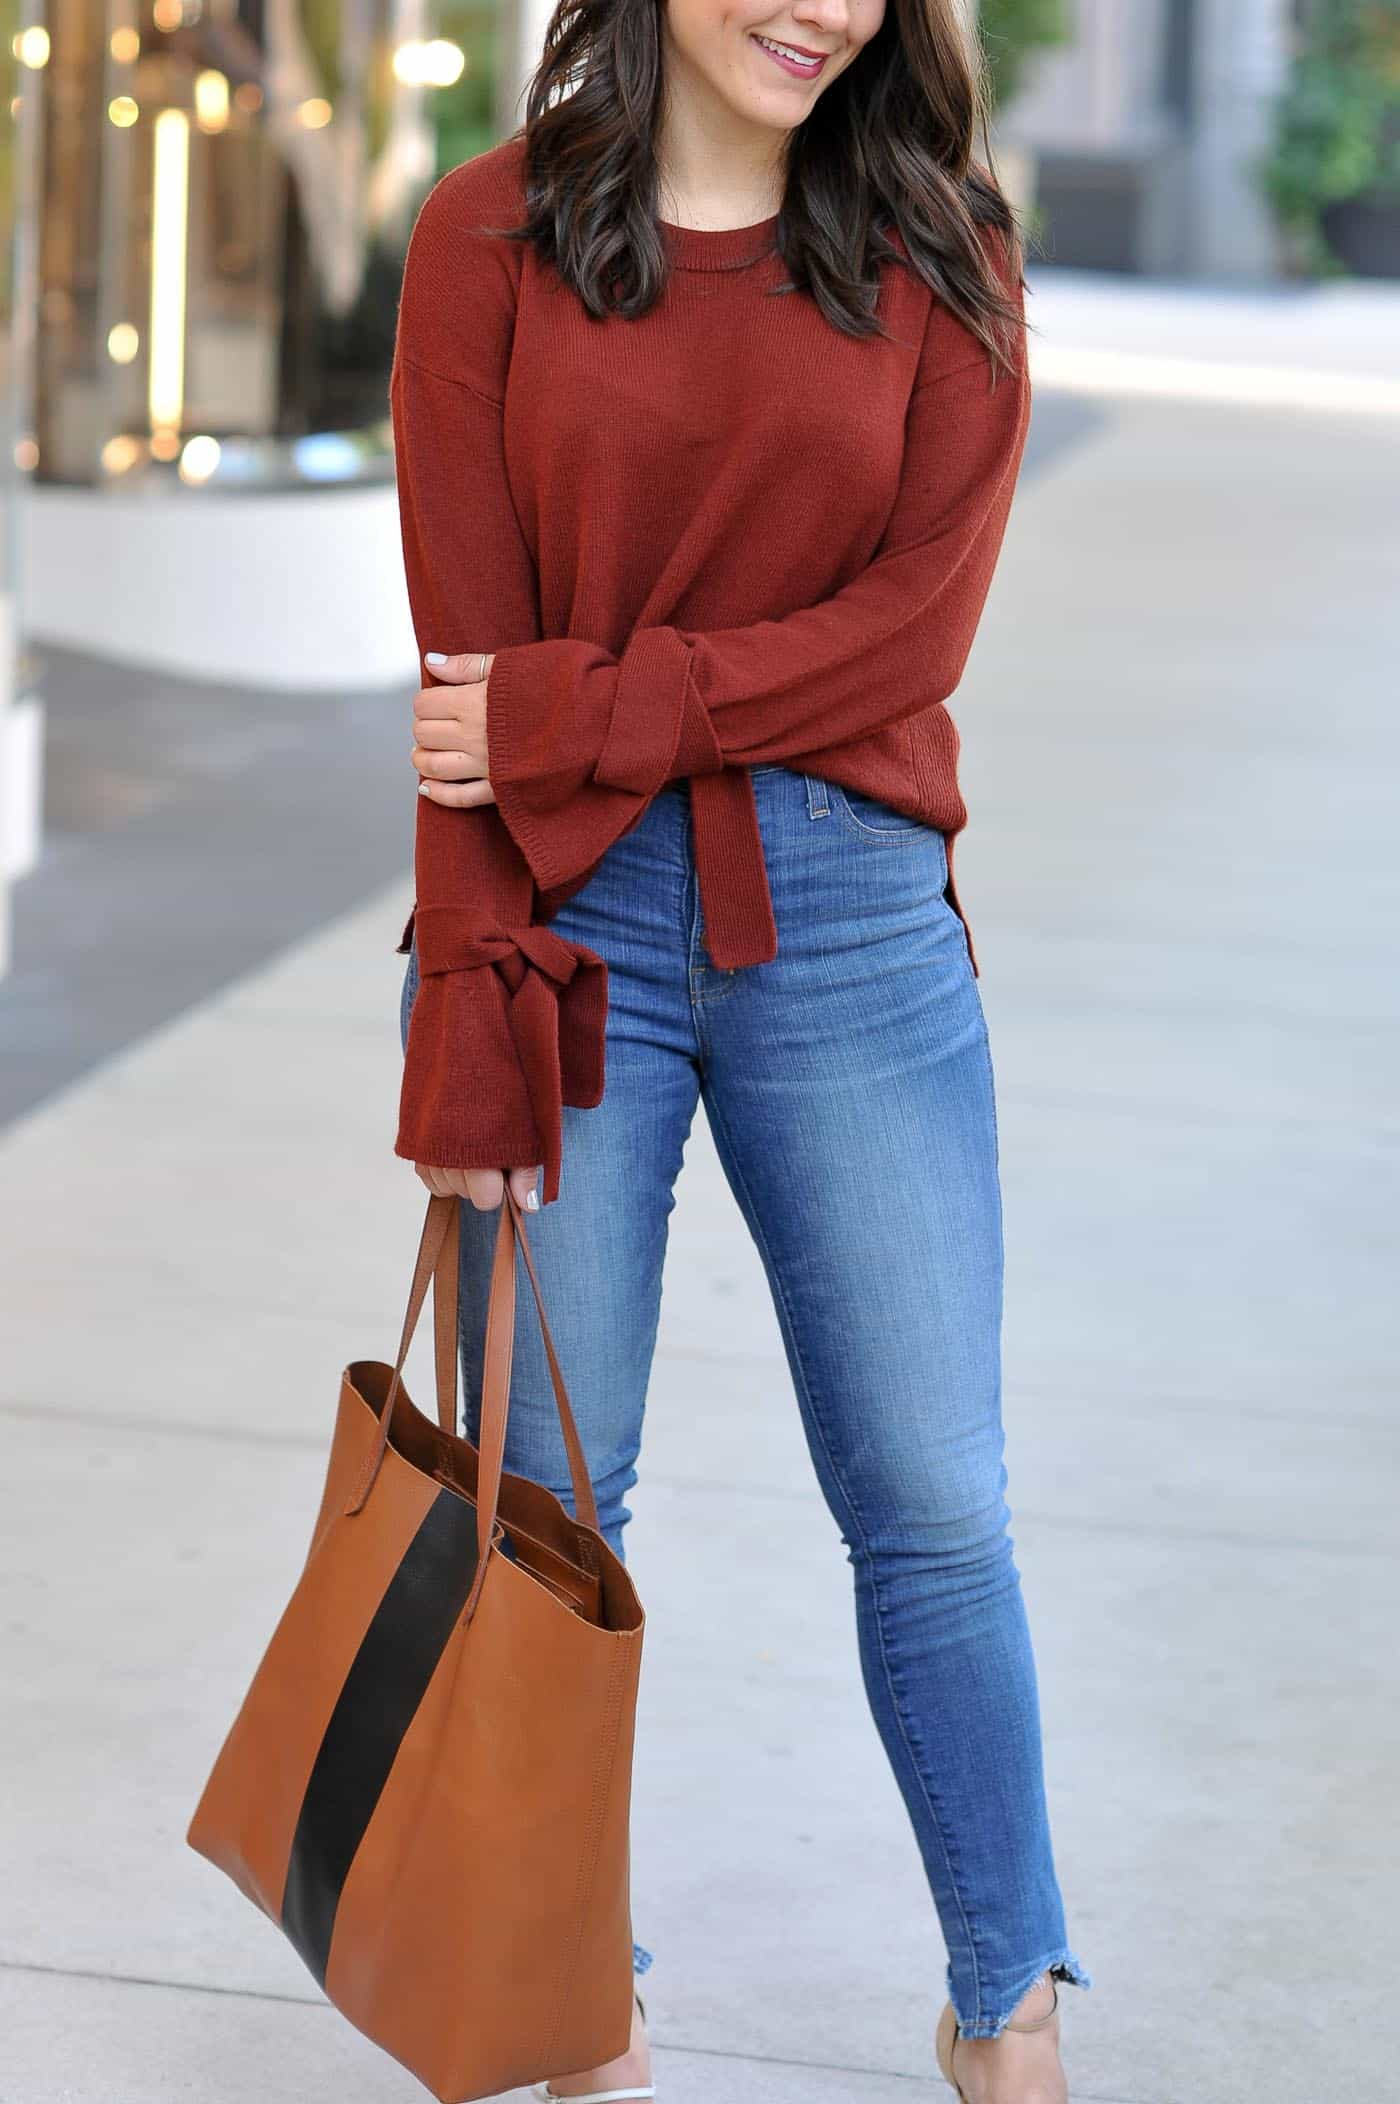 Madewell Tie Sweater, affordable fall outfits, sweaters for fall, casual fall outfits - My Style Vita @mystylevita